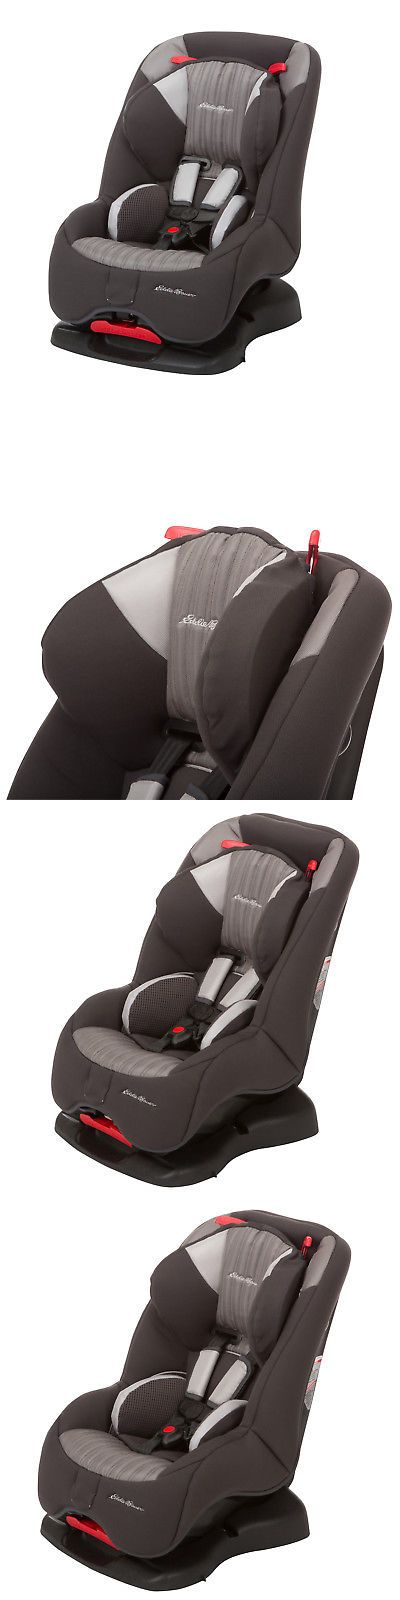 Ed Bauer Deluxe 2 In 1 Convertible Car Seat Choose Your Color Seats And Cars